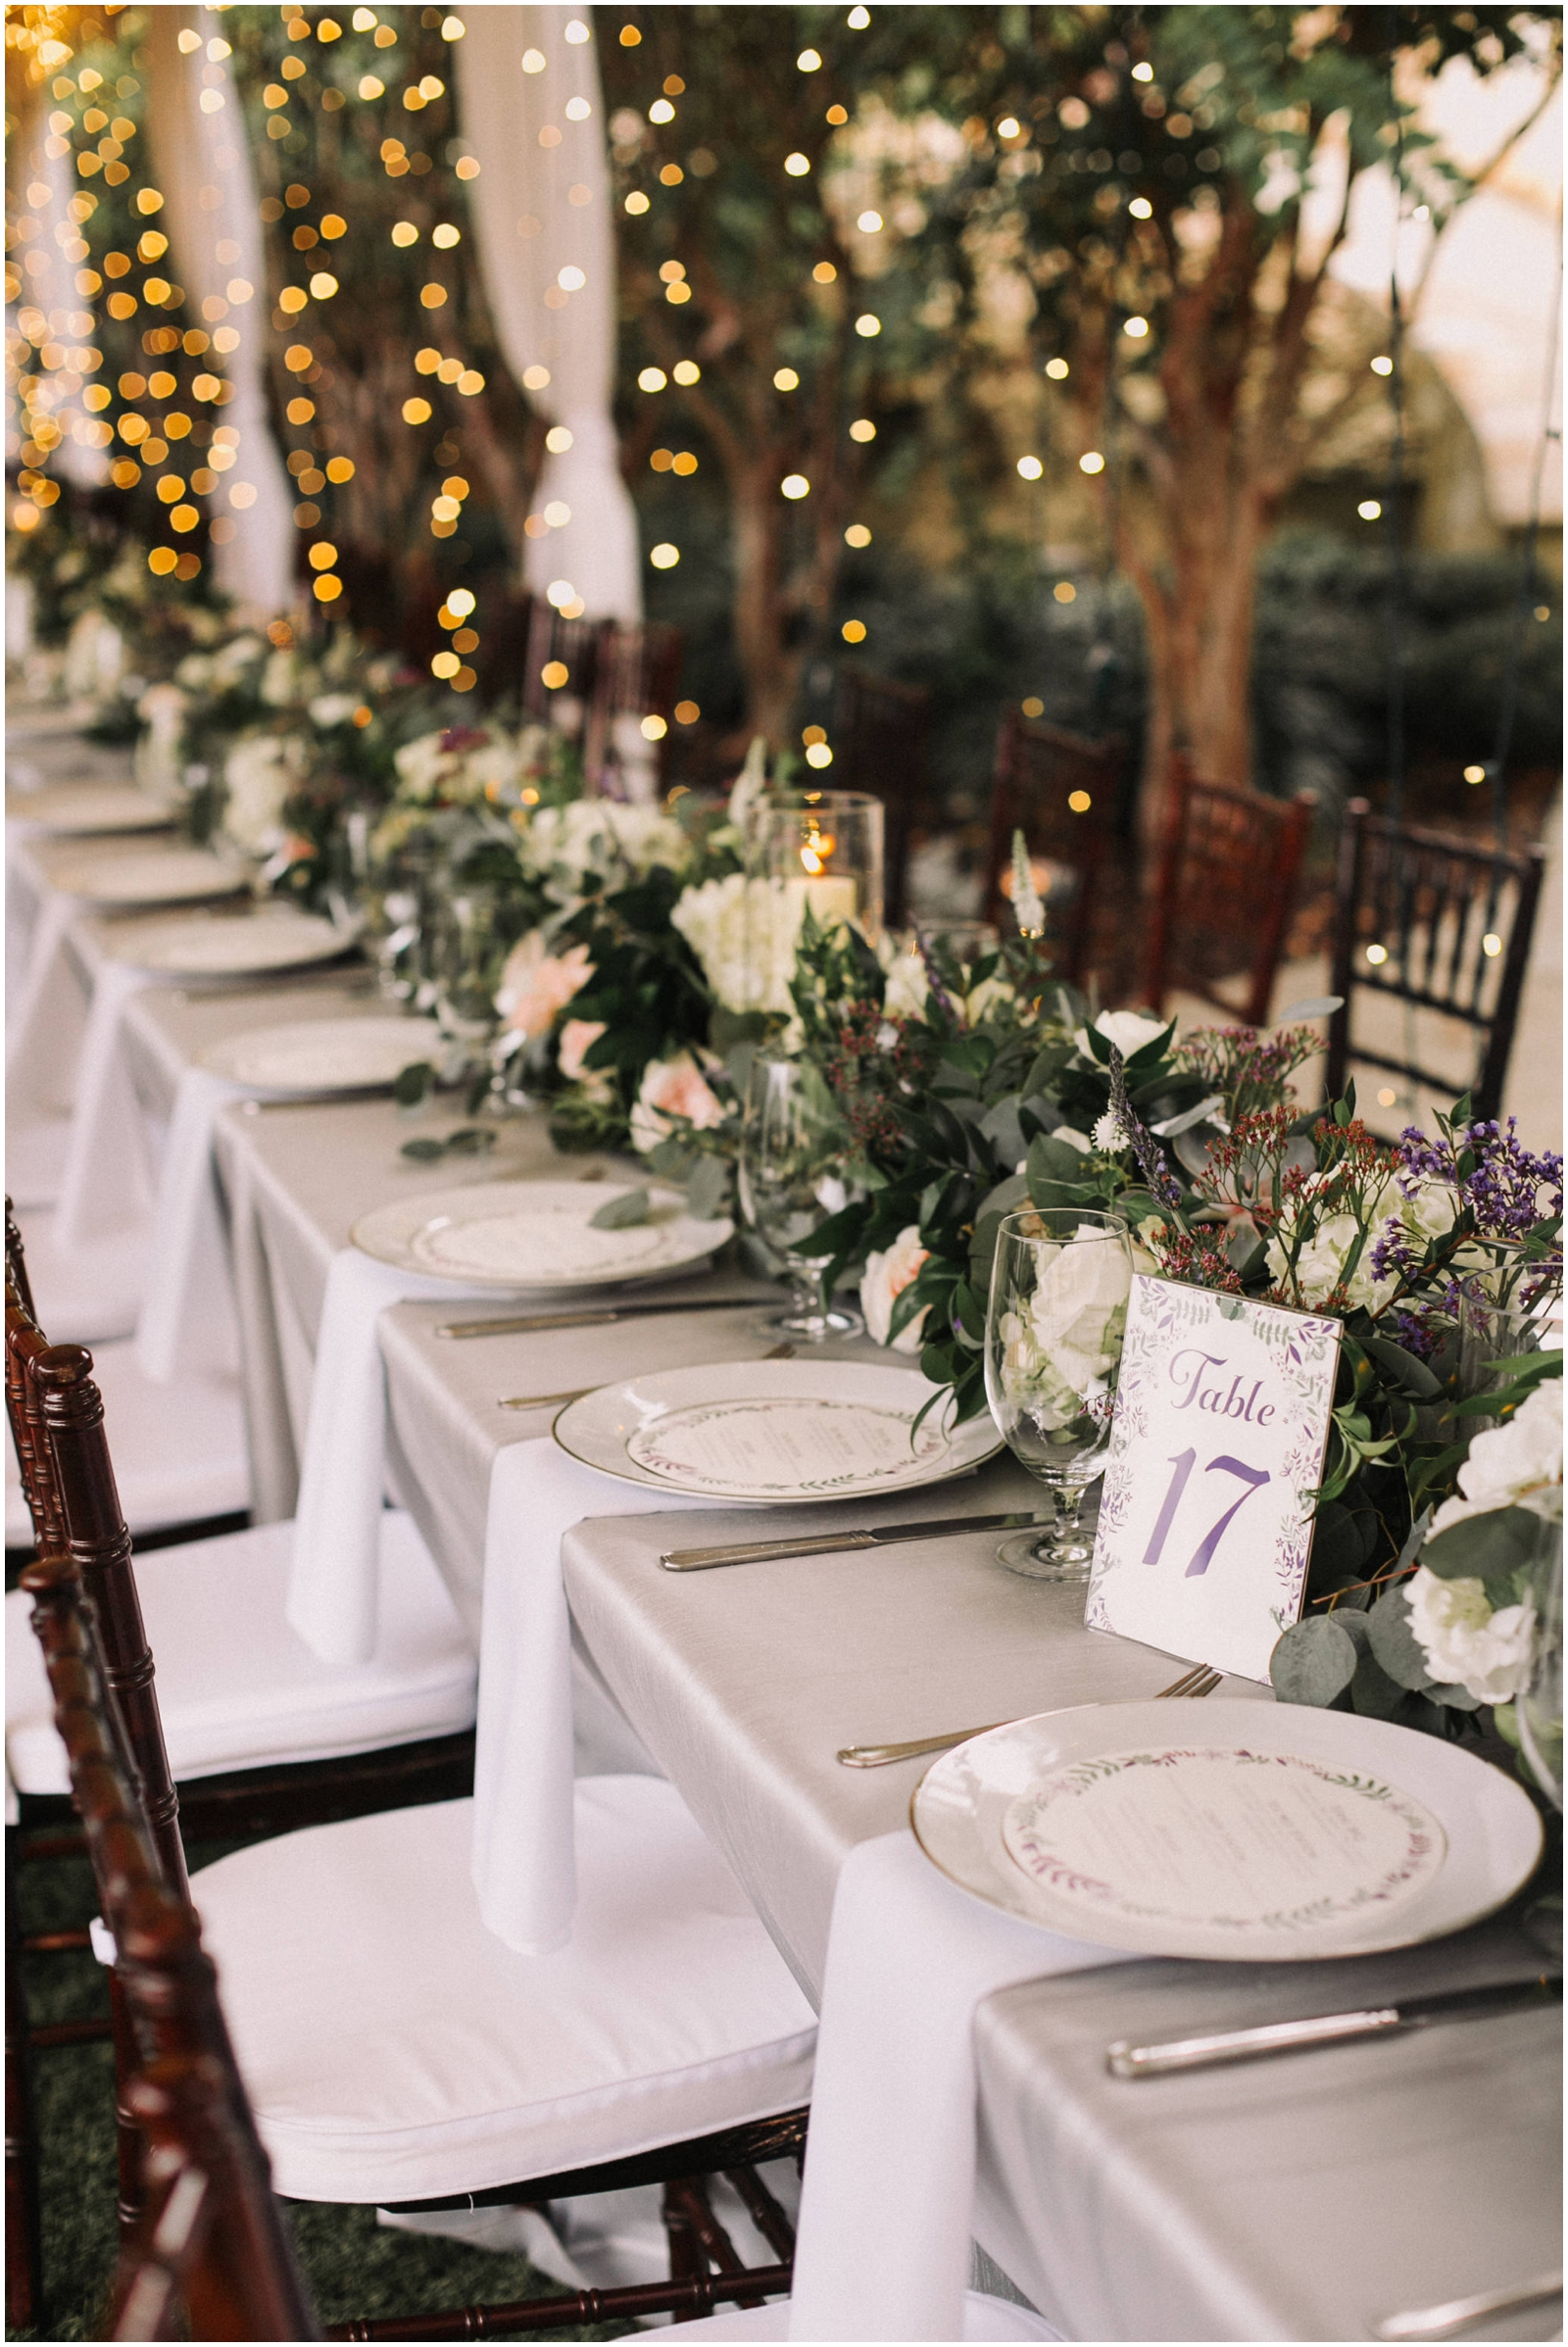 White floral and candle centerpieces